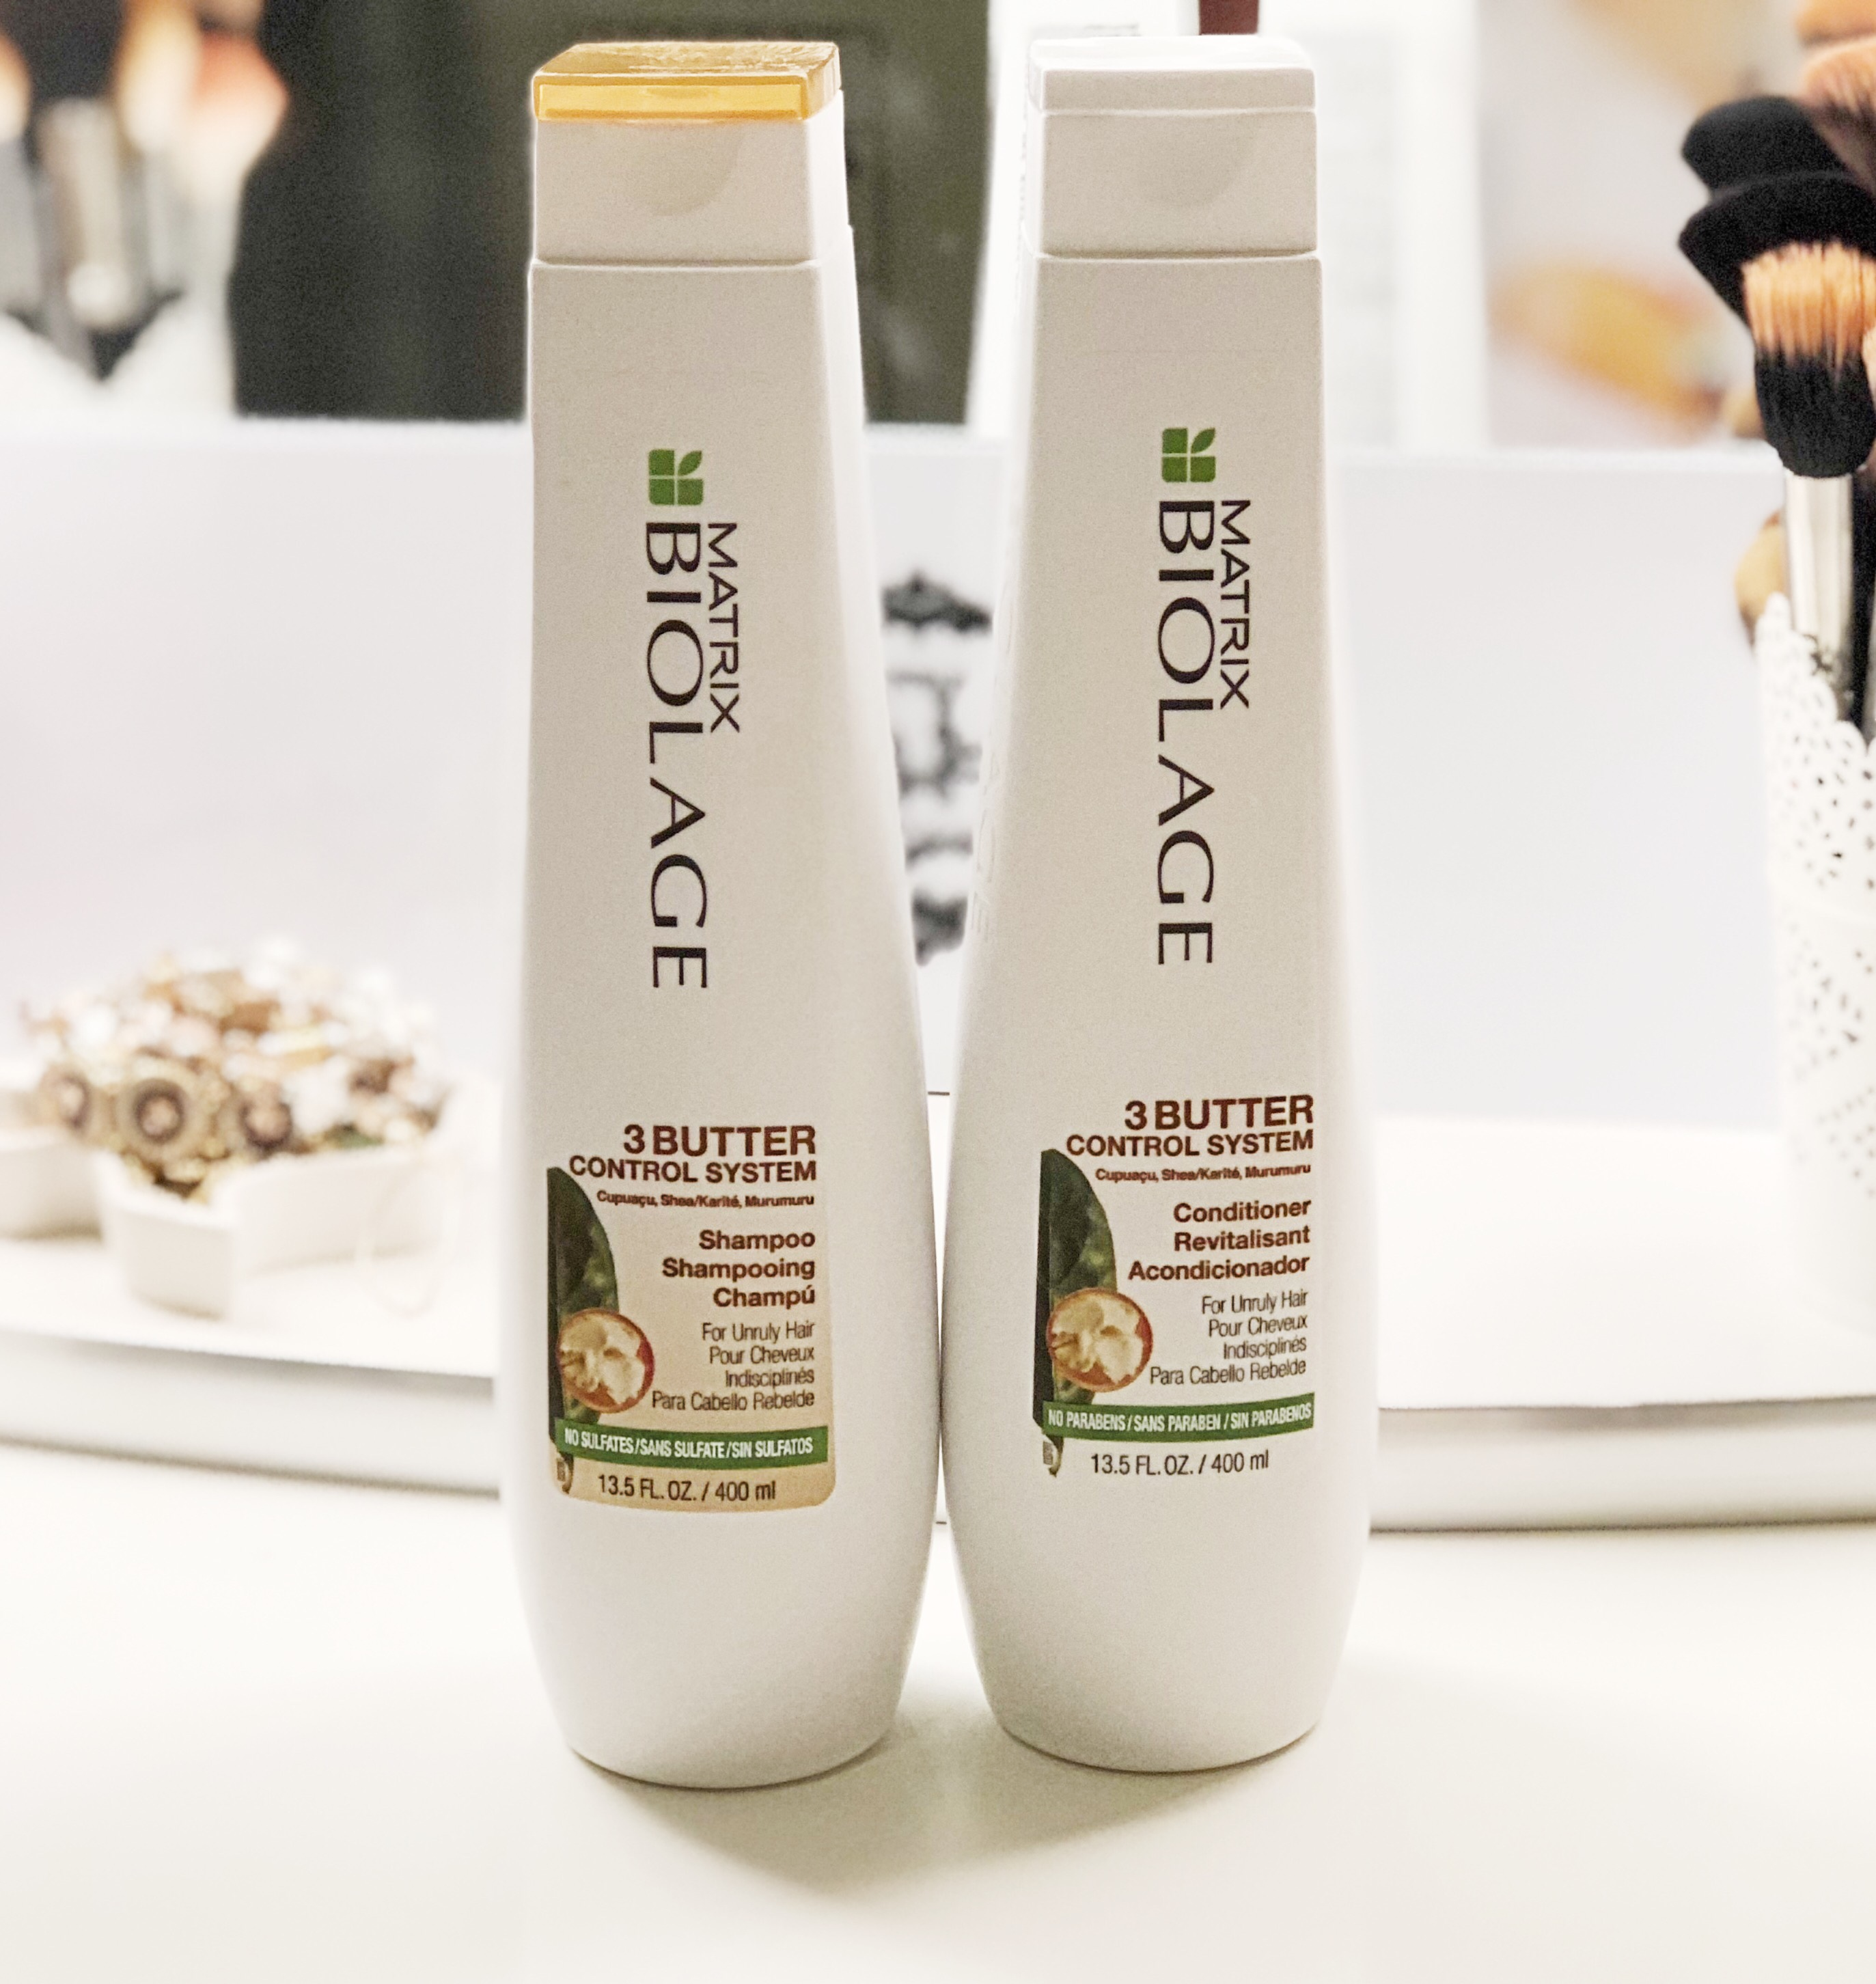 Biolage 3 Butter Control System – Review